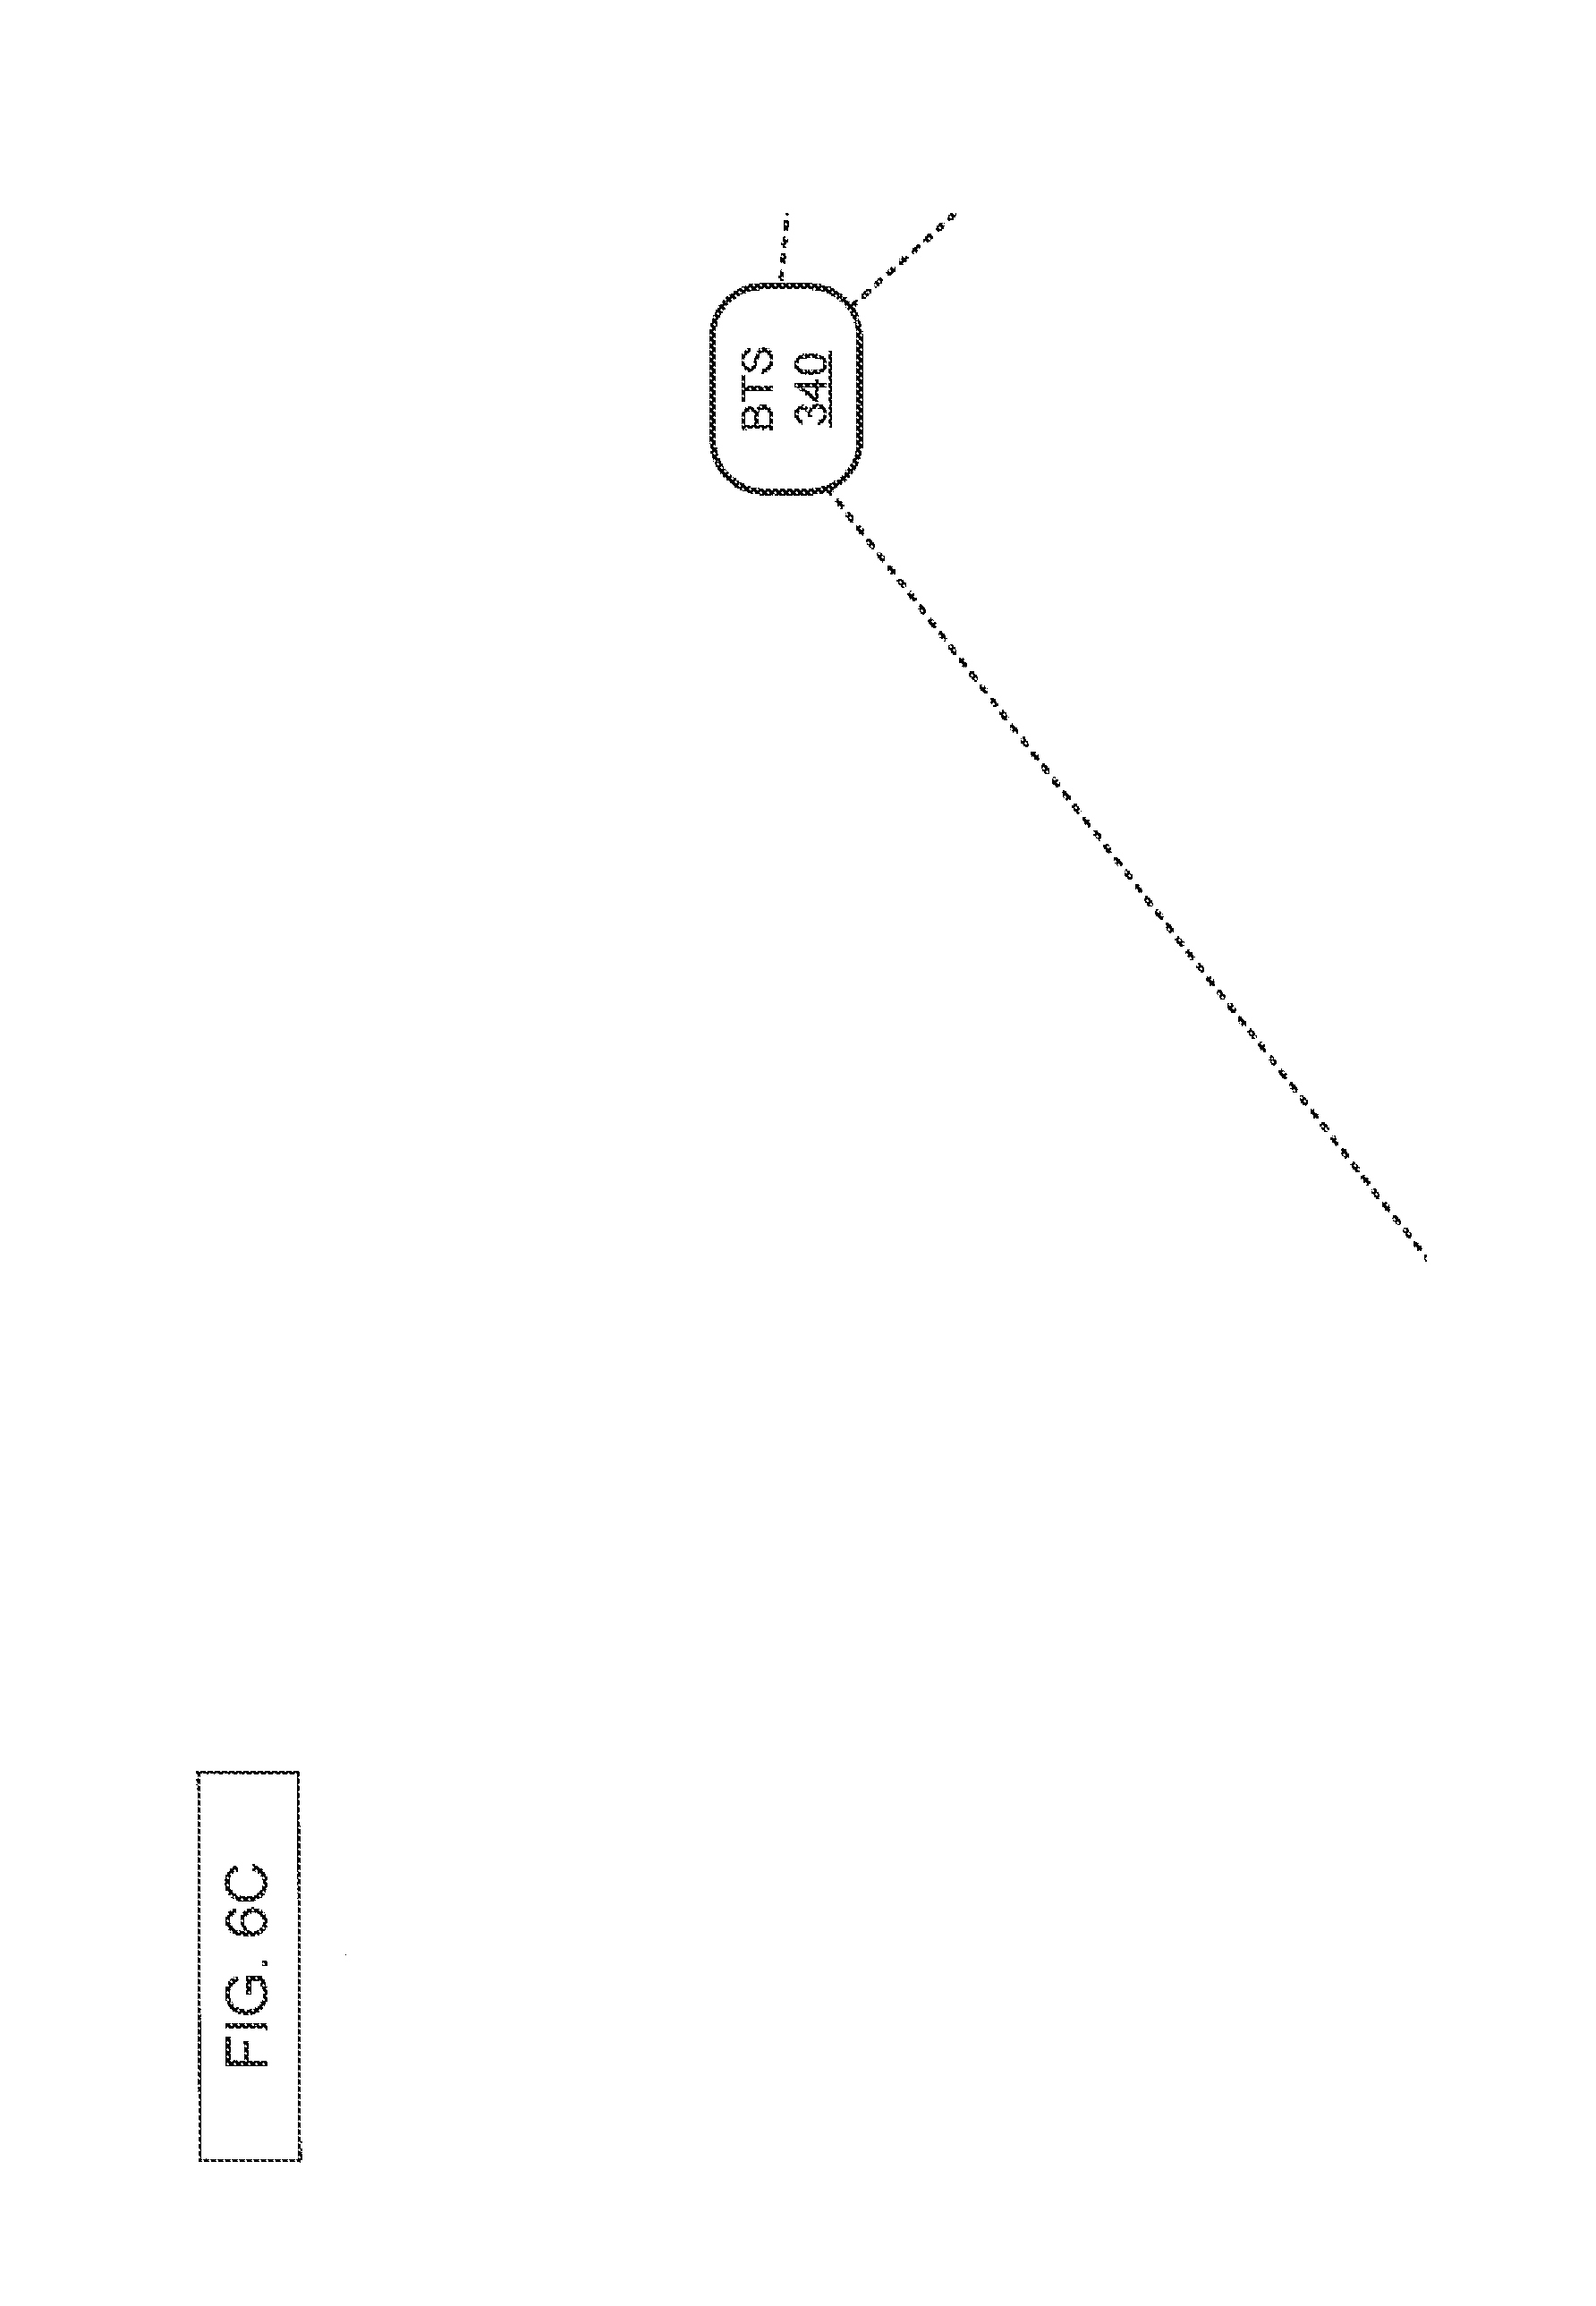 Patent Us 9813887 B2 Circuit Diagram Additionally Rf Transmitter On Untested Images